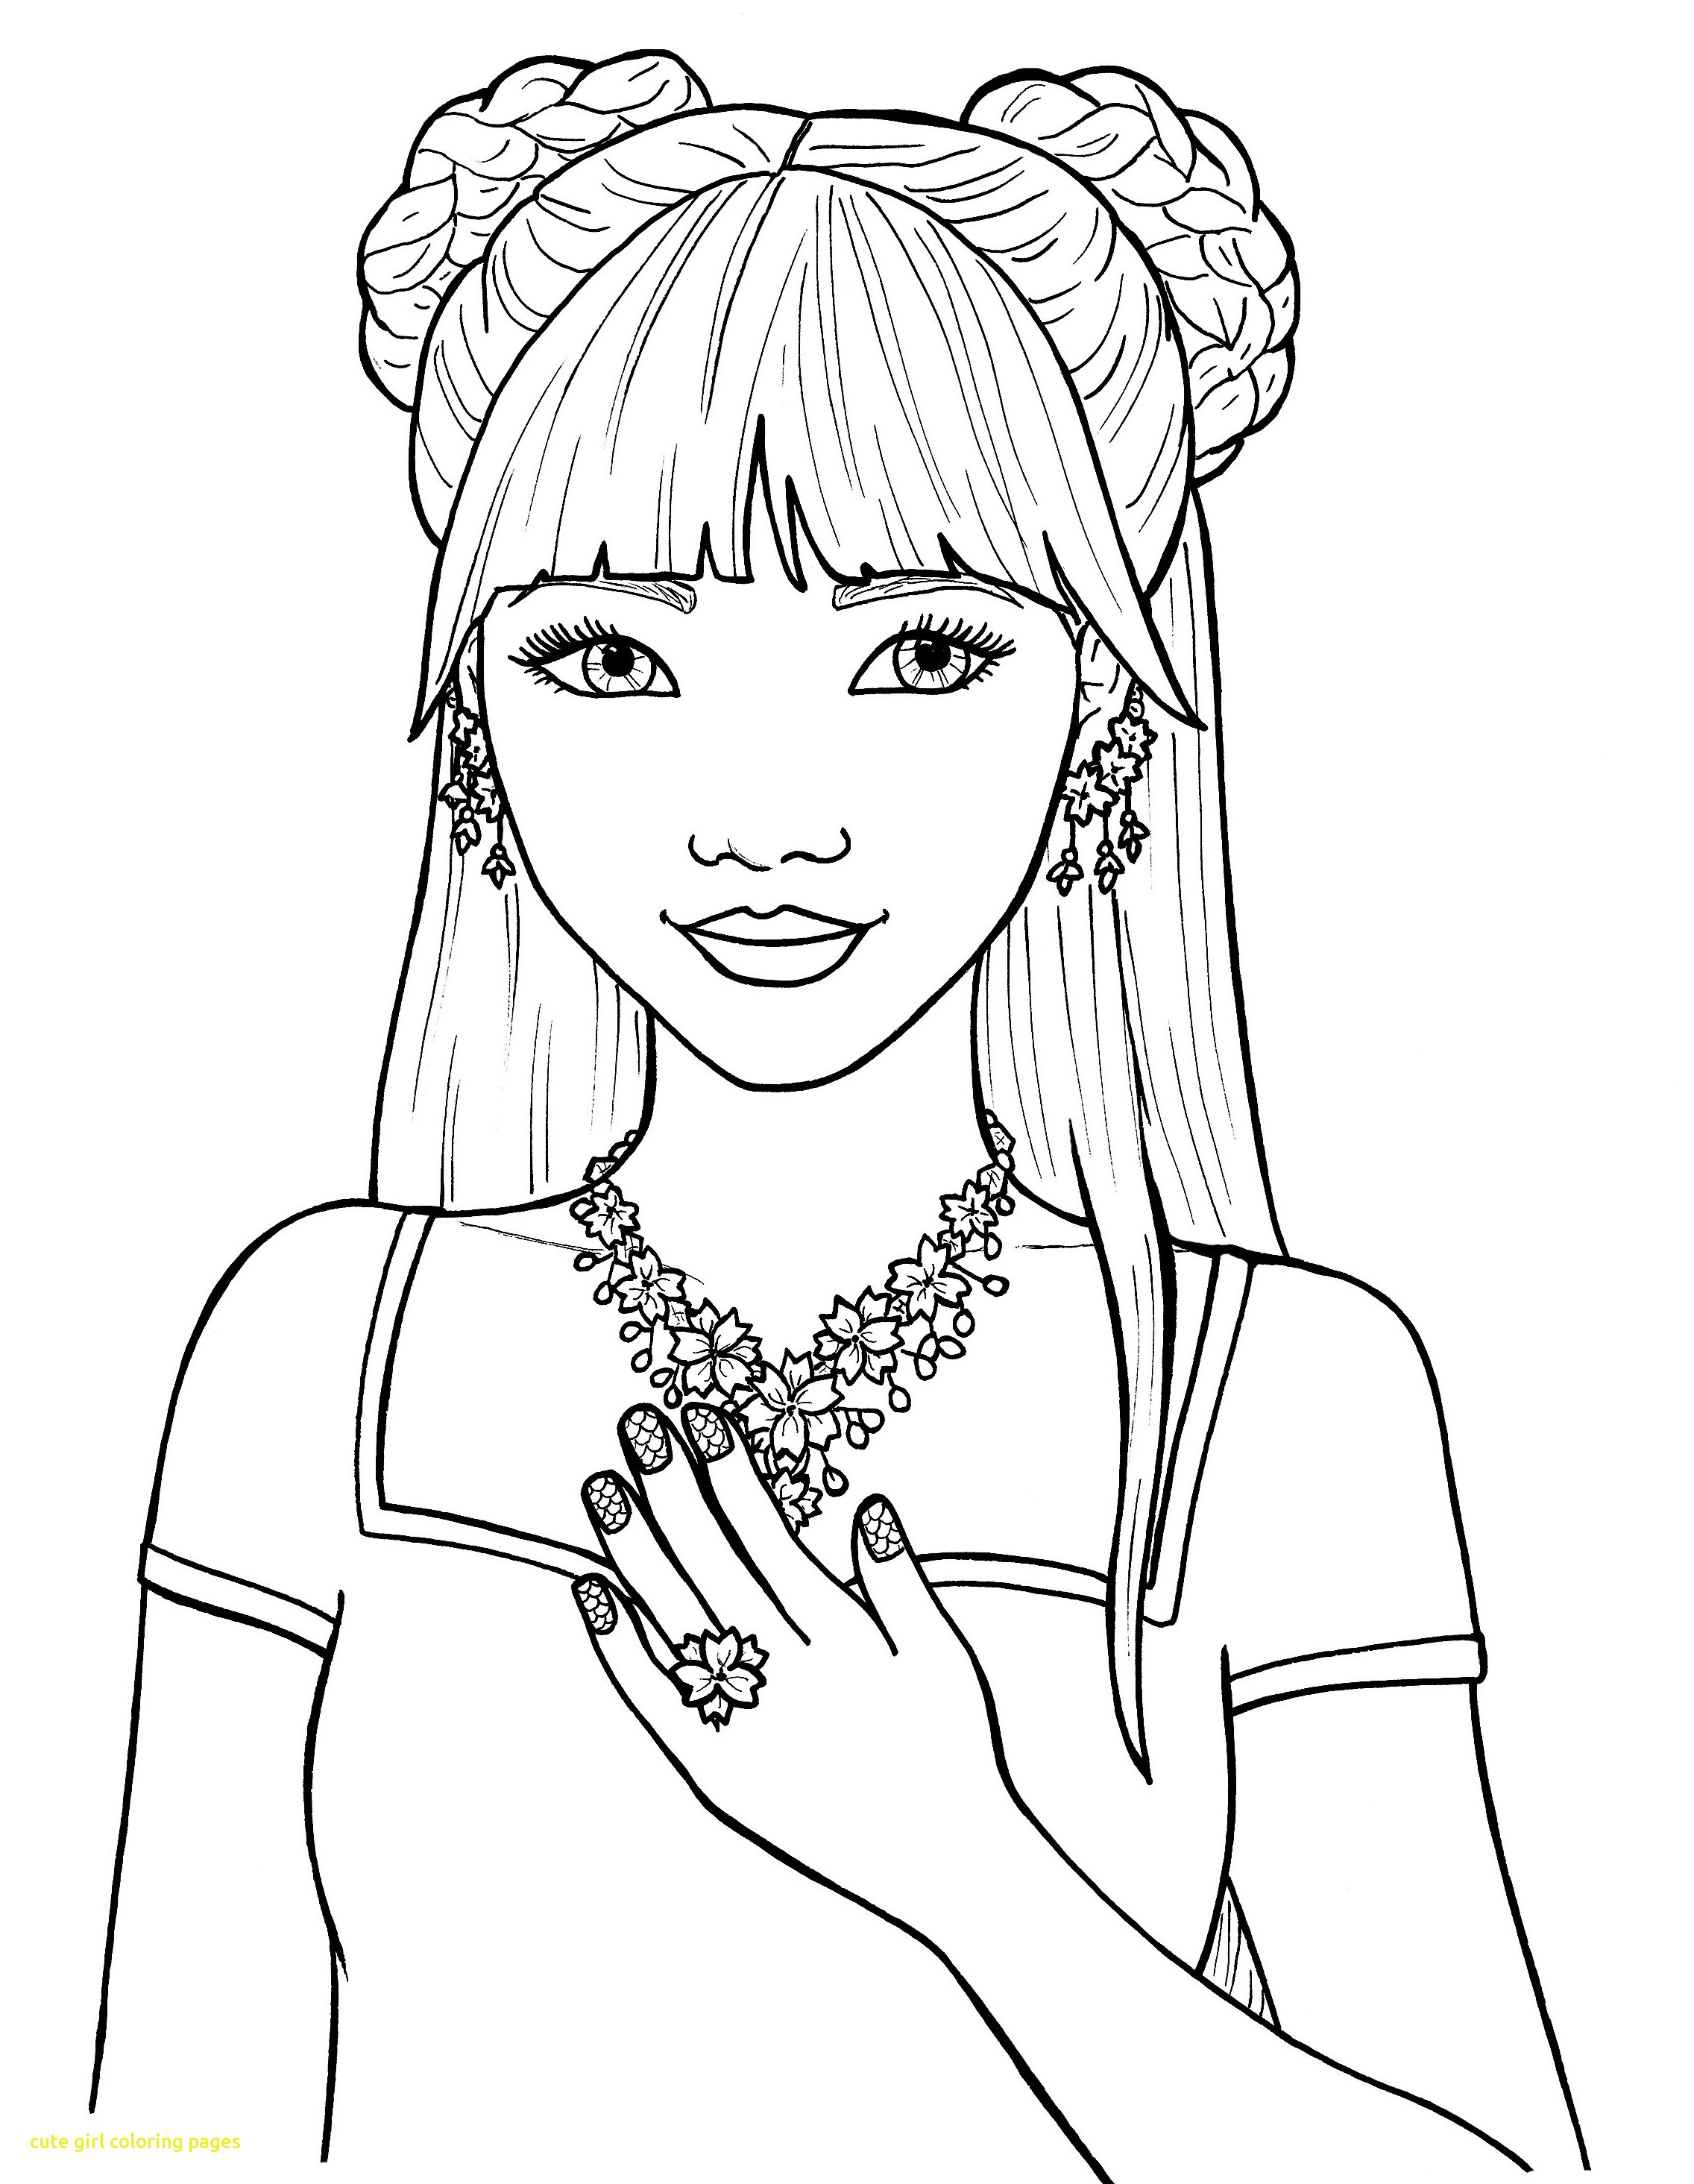 colouring pictures girls 28 best disney princess coloring pages images on pinterest colouring girls pictures